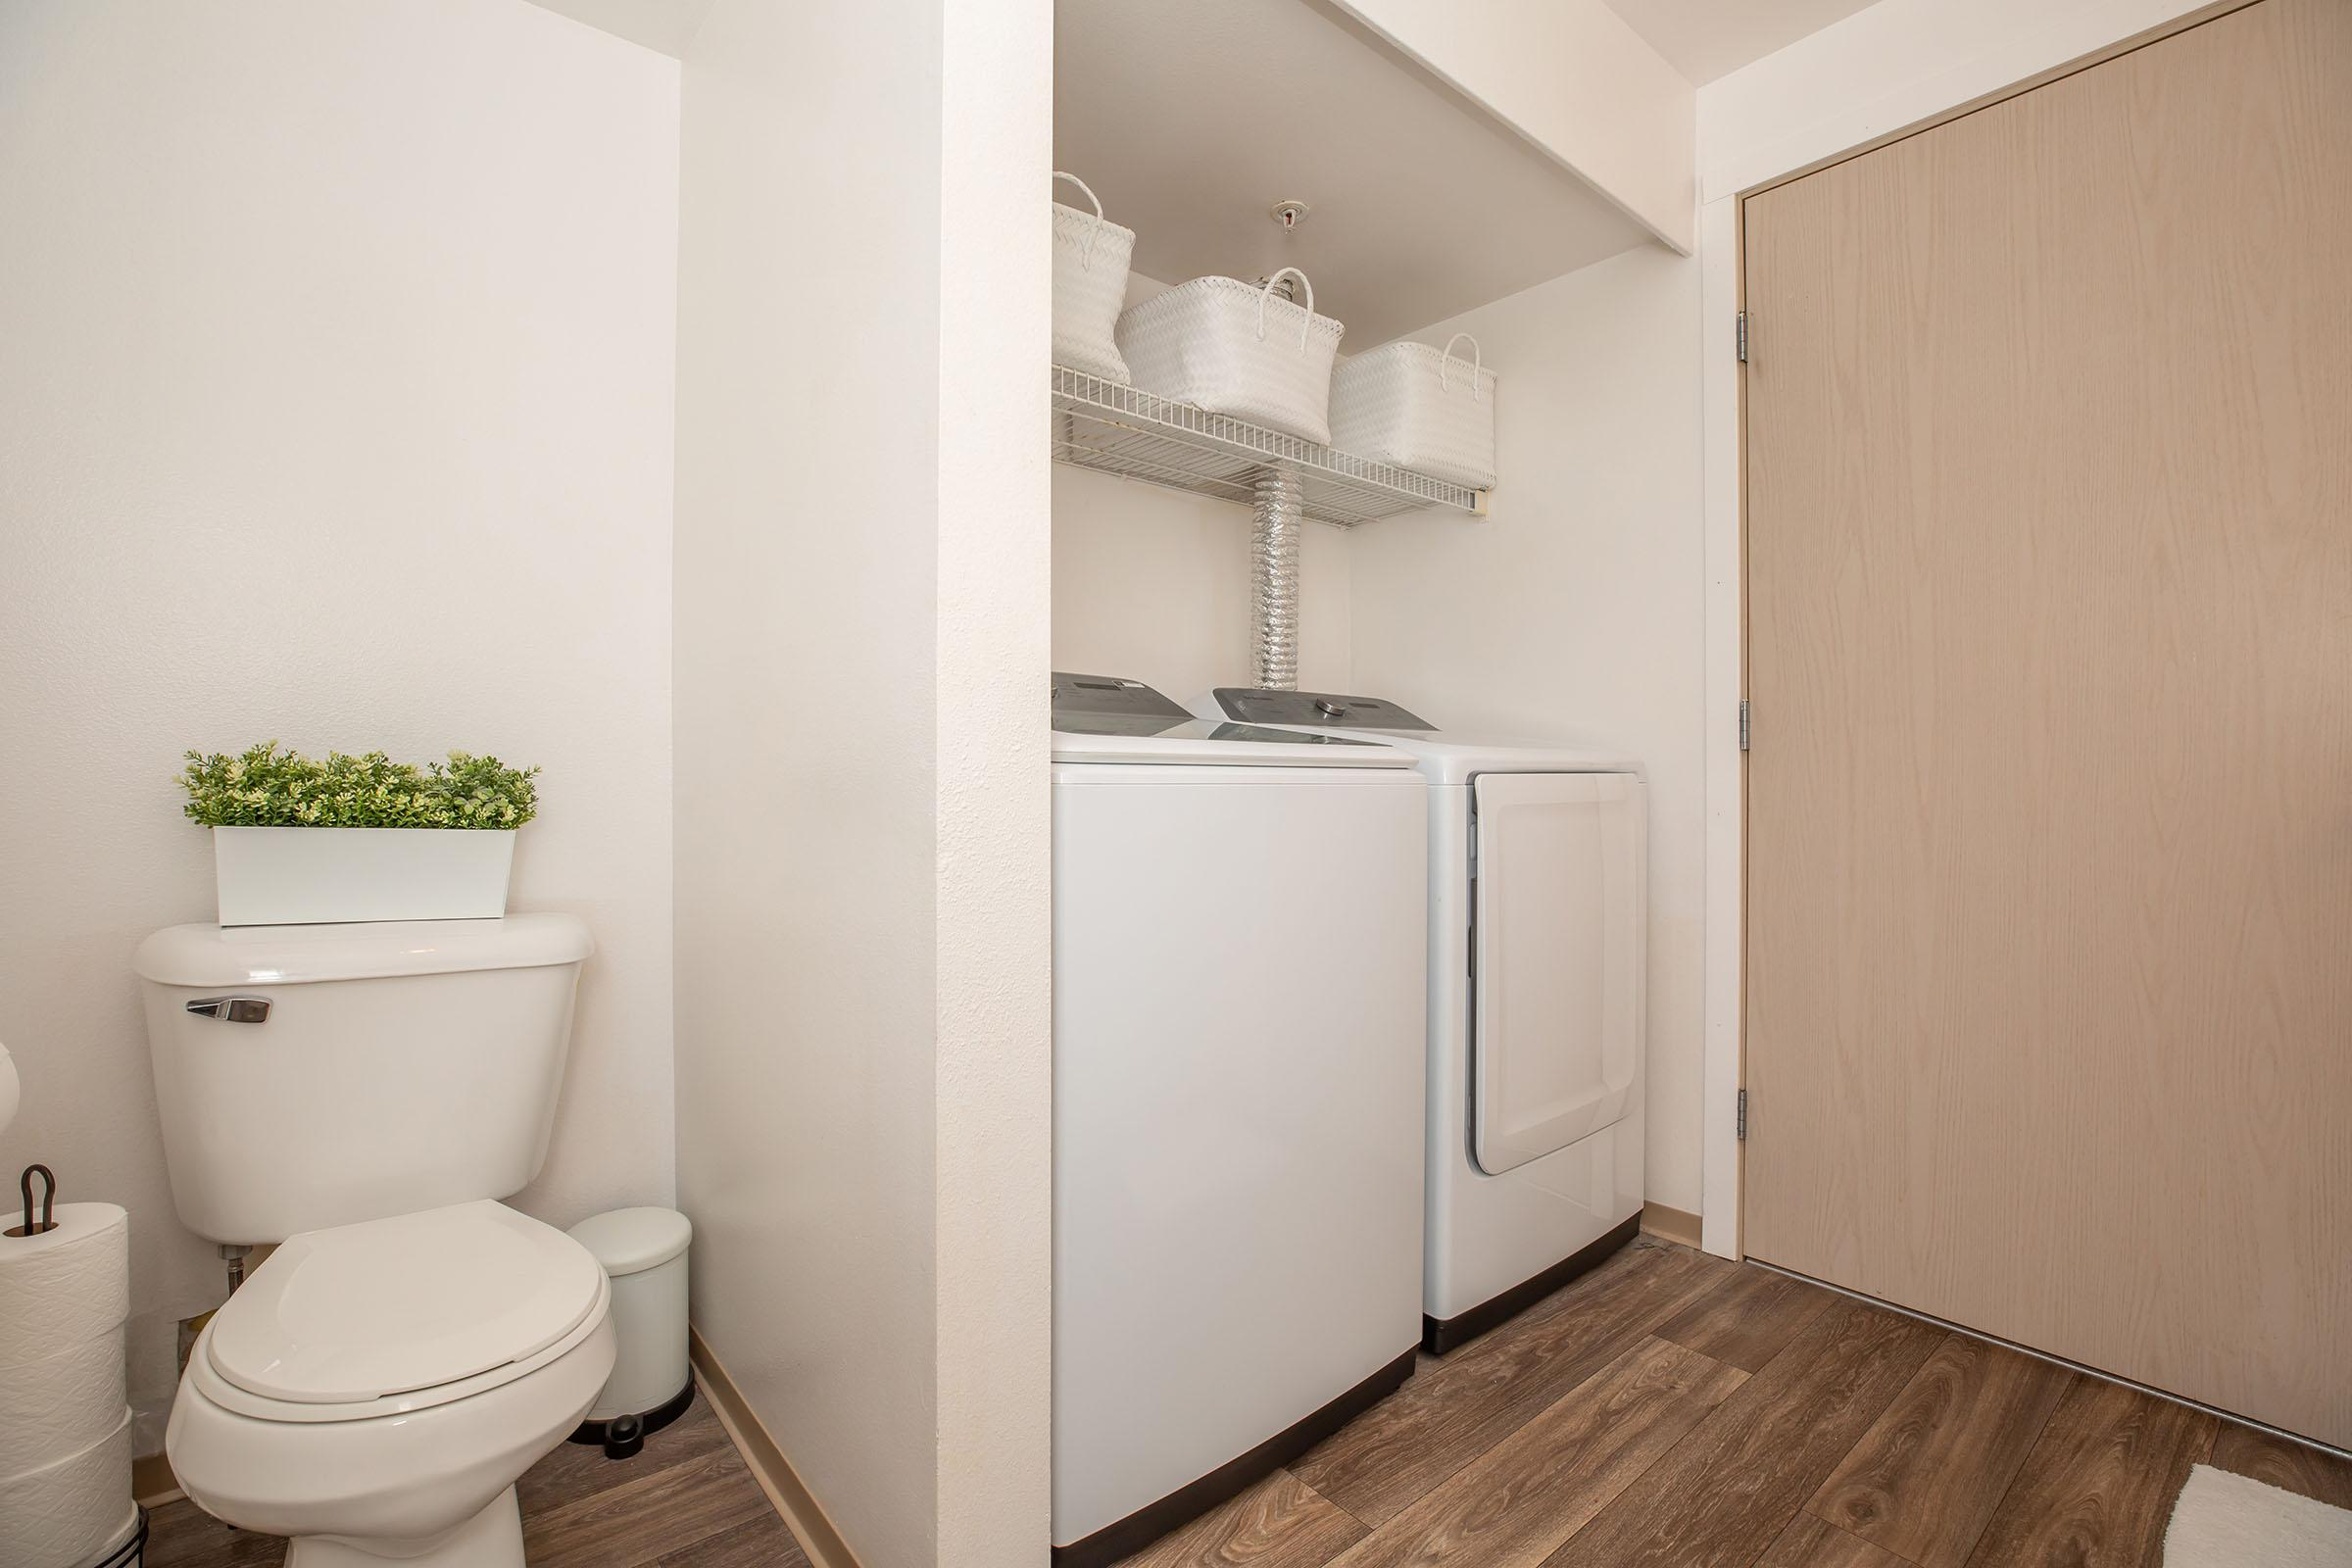 SLEEK WASHER AND DRYER IN HOME